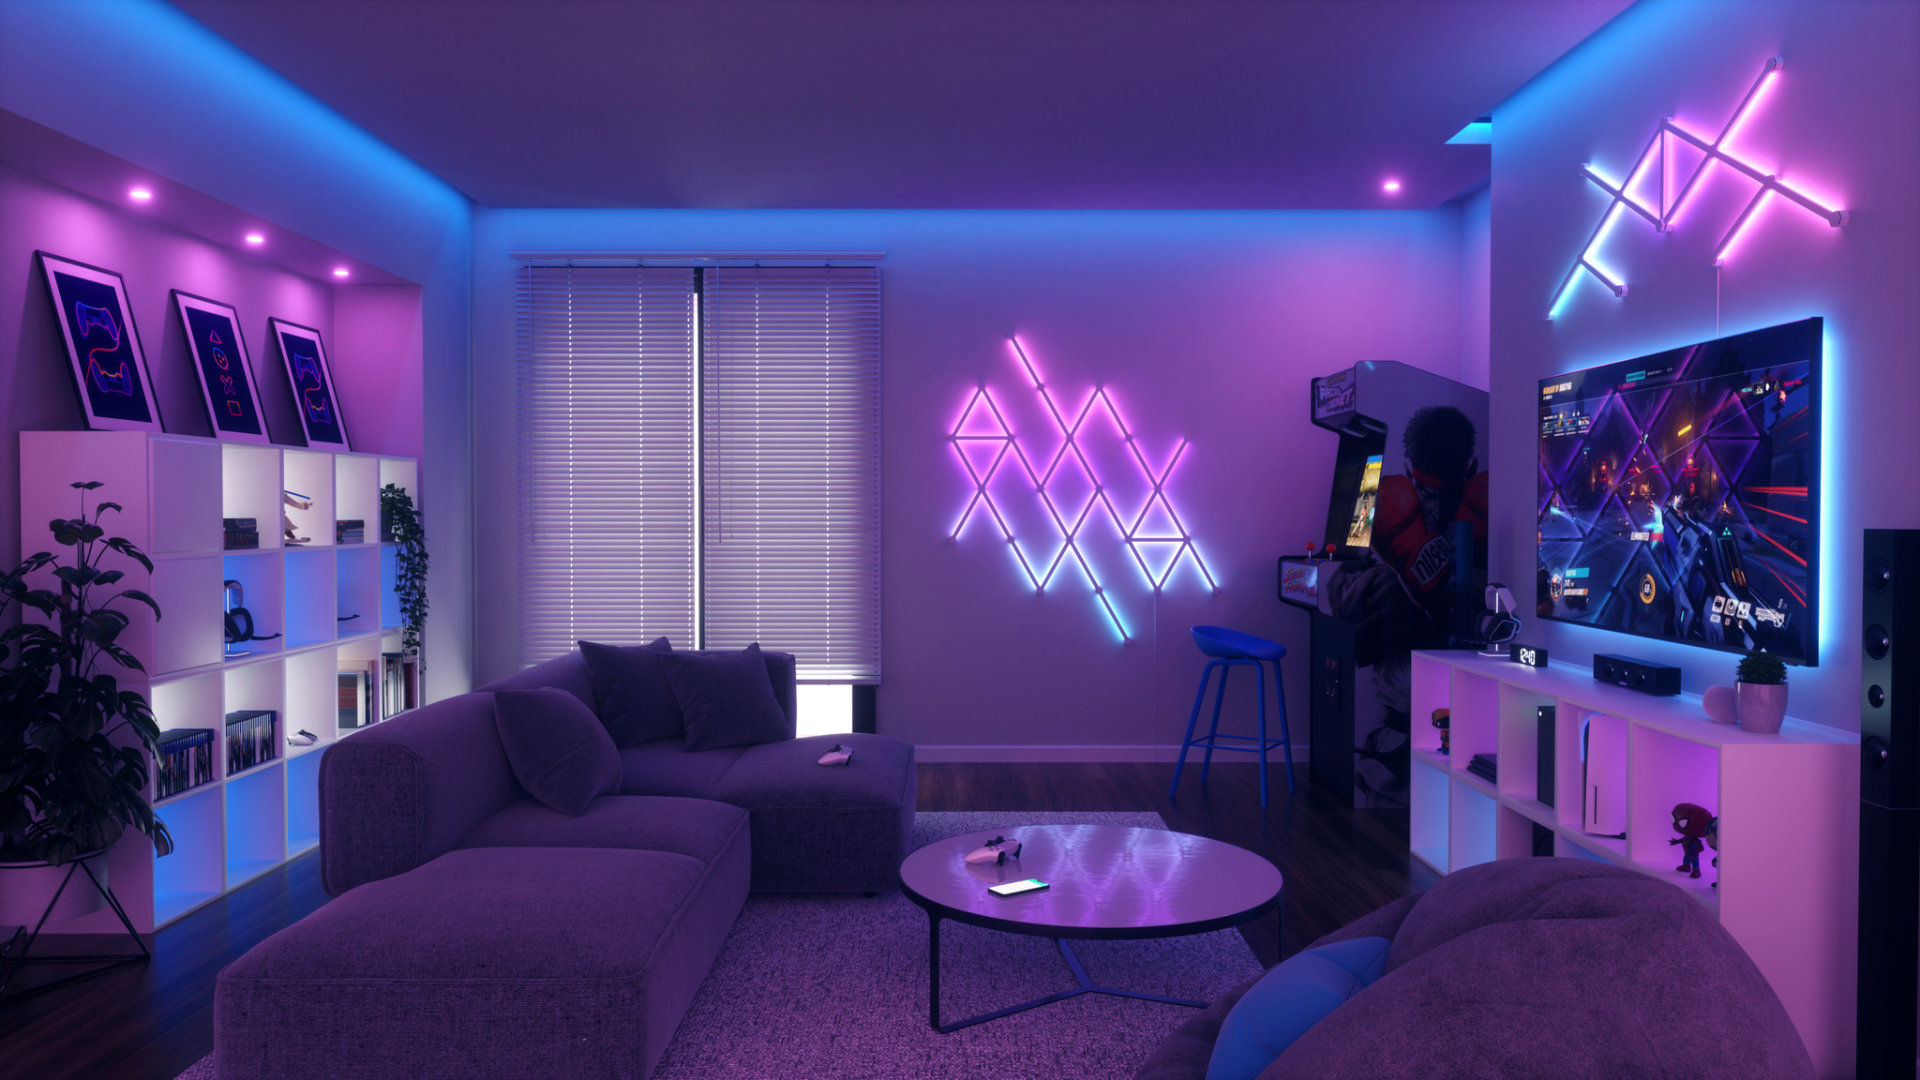 Nanoleaf's latest LED lights fit above your gaming PC and in your bedroom